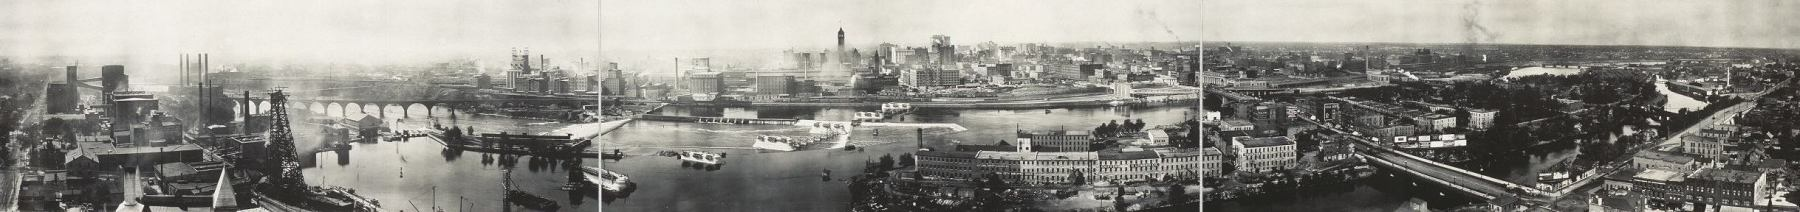 Panorama-Minneapolis-1915